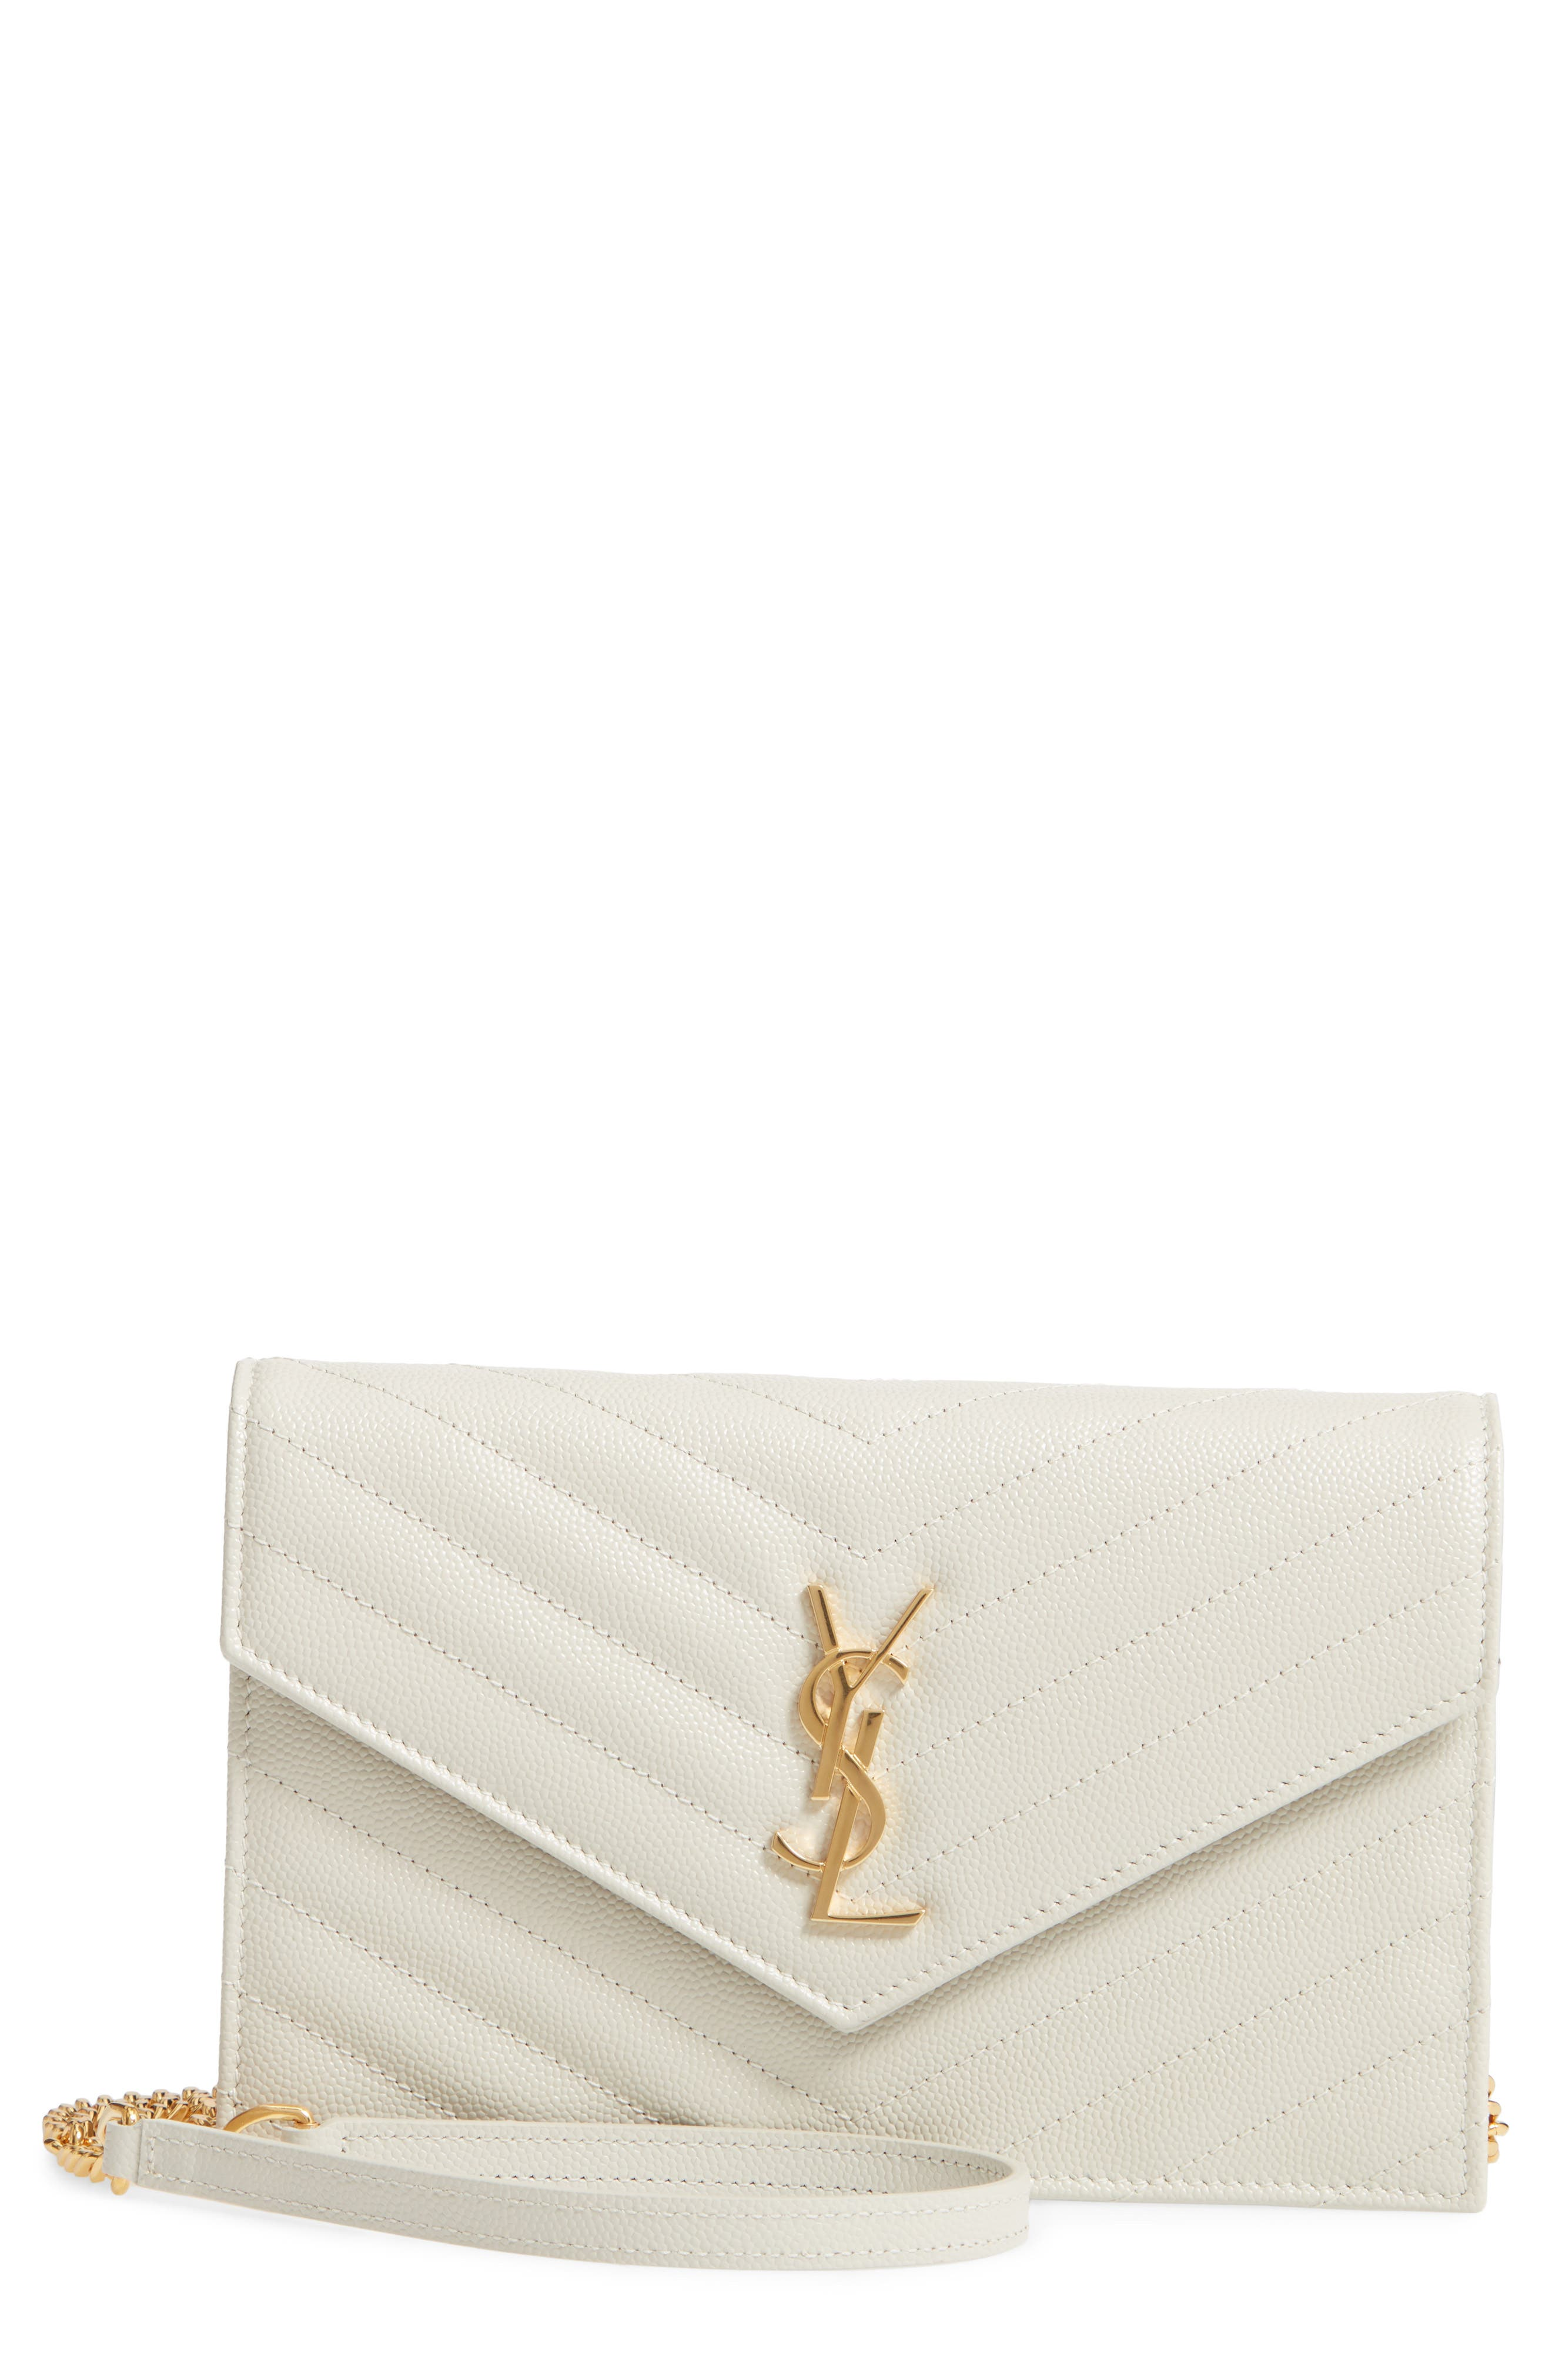 SAINT LAURENT, 'Small Mono' Leather Wallet on a Chain, Main thumbnail 1, color, CREMASOFT